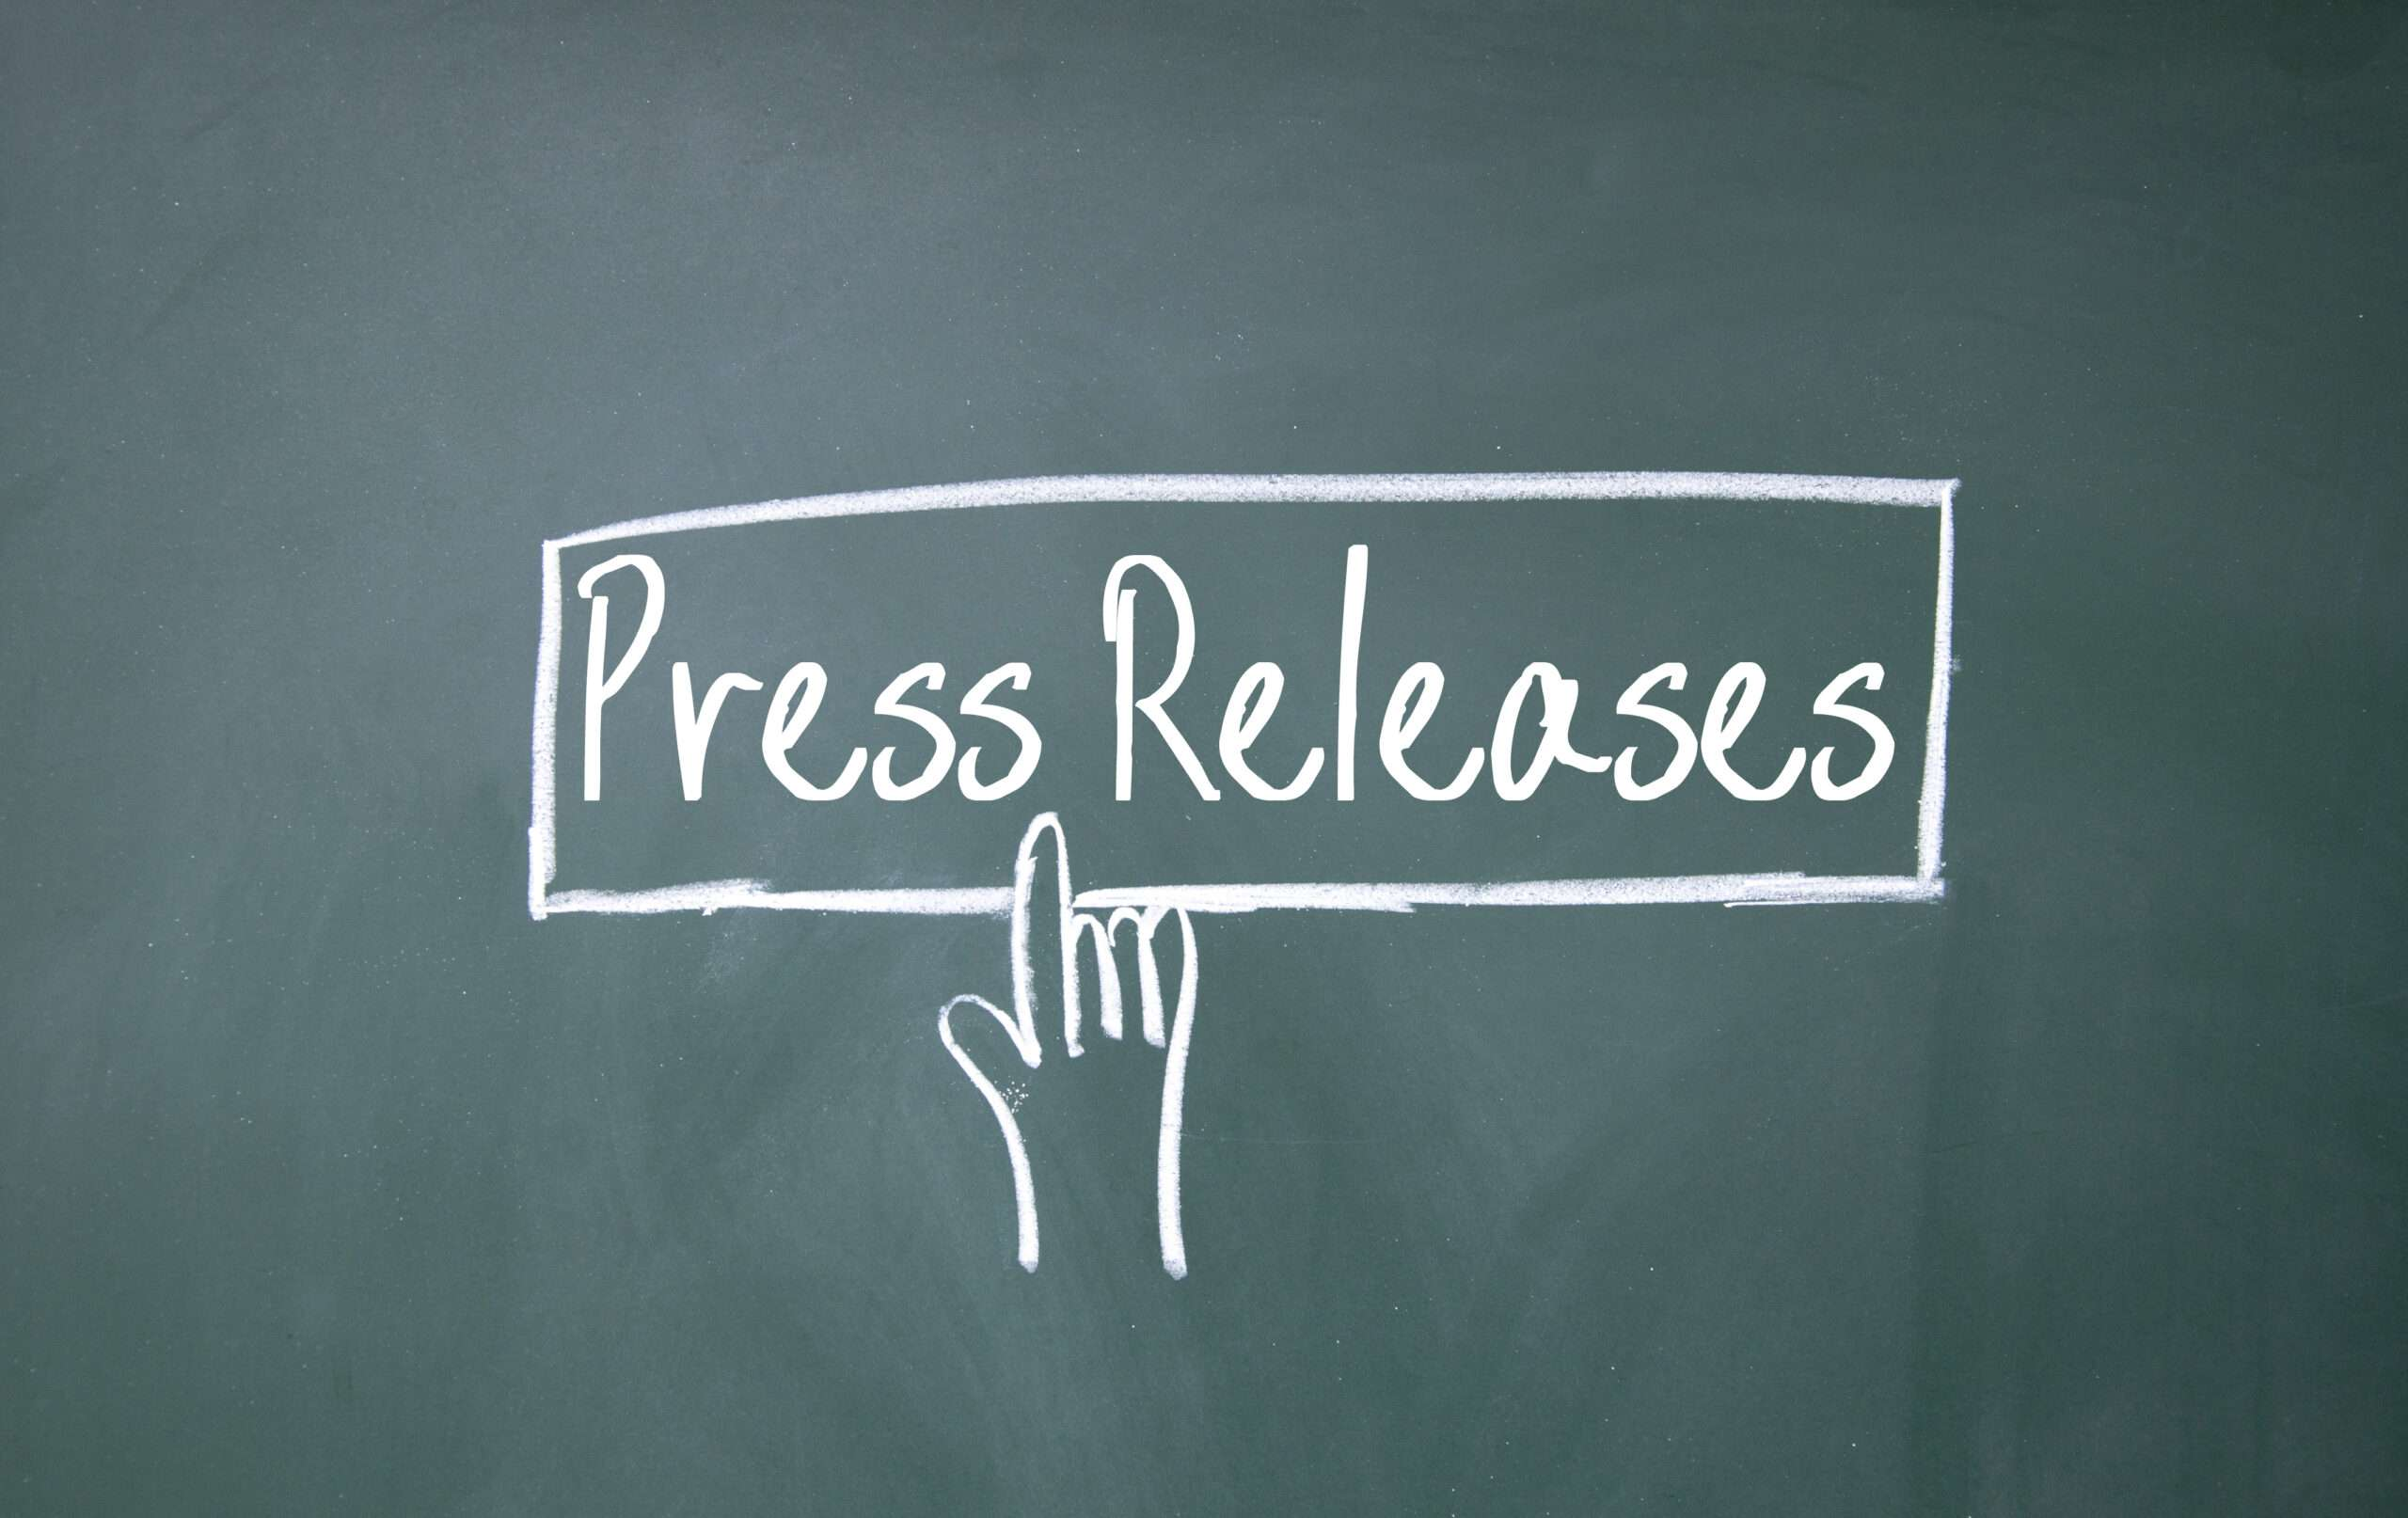 Benefits of Press Release